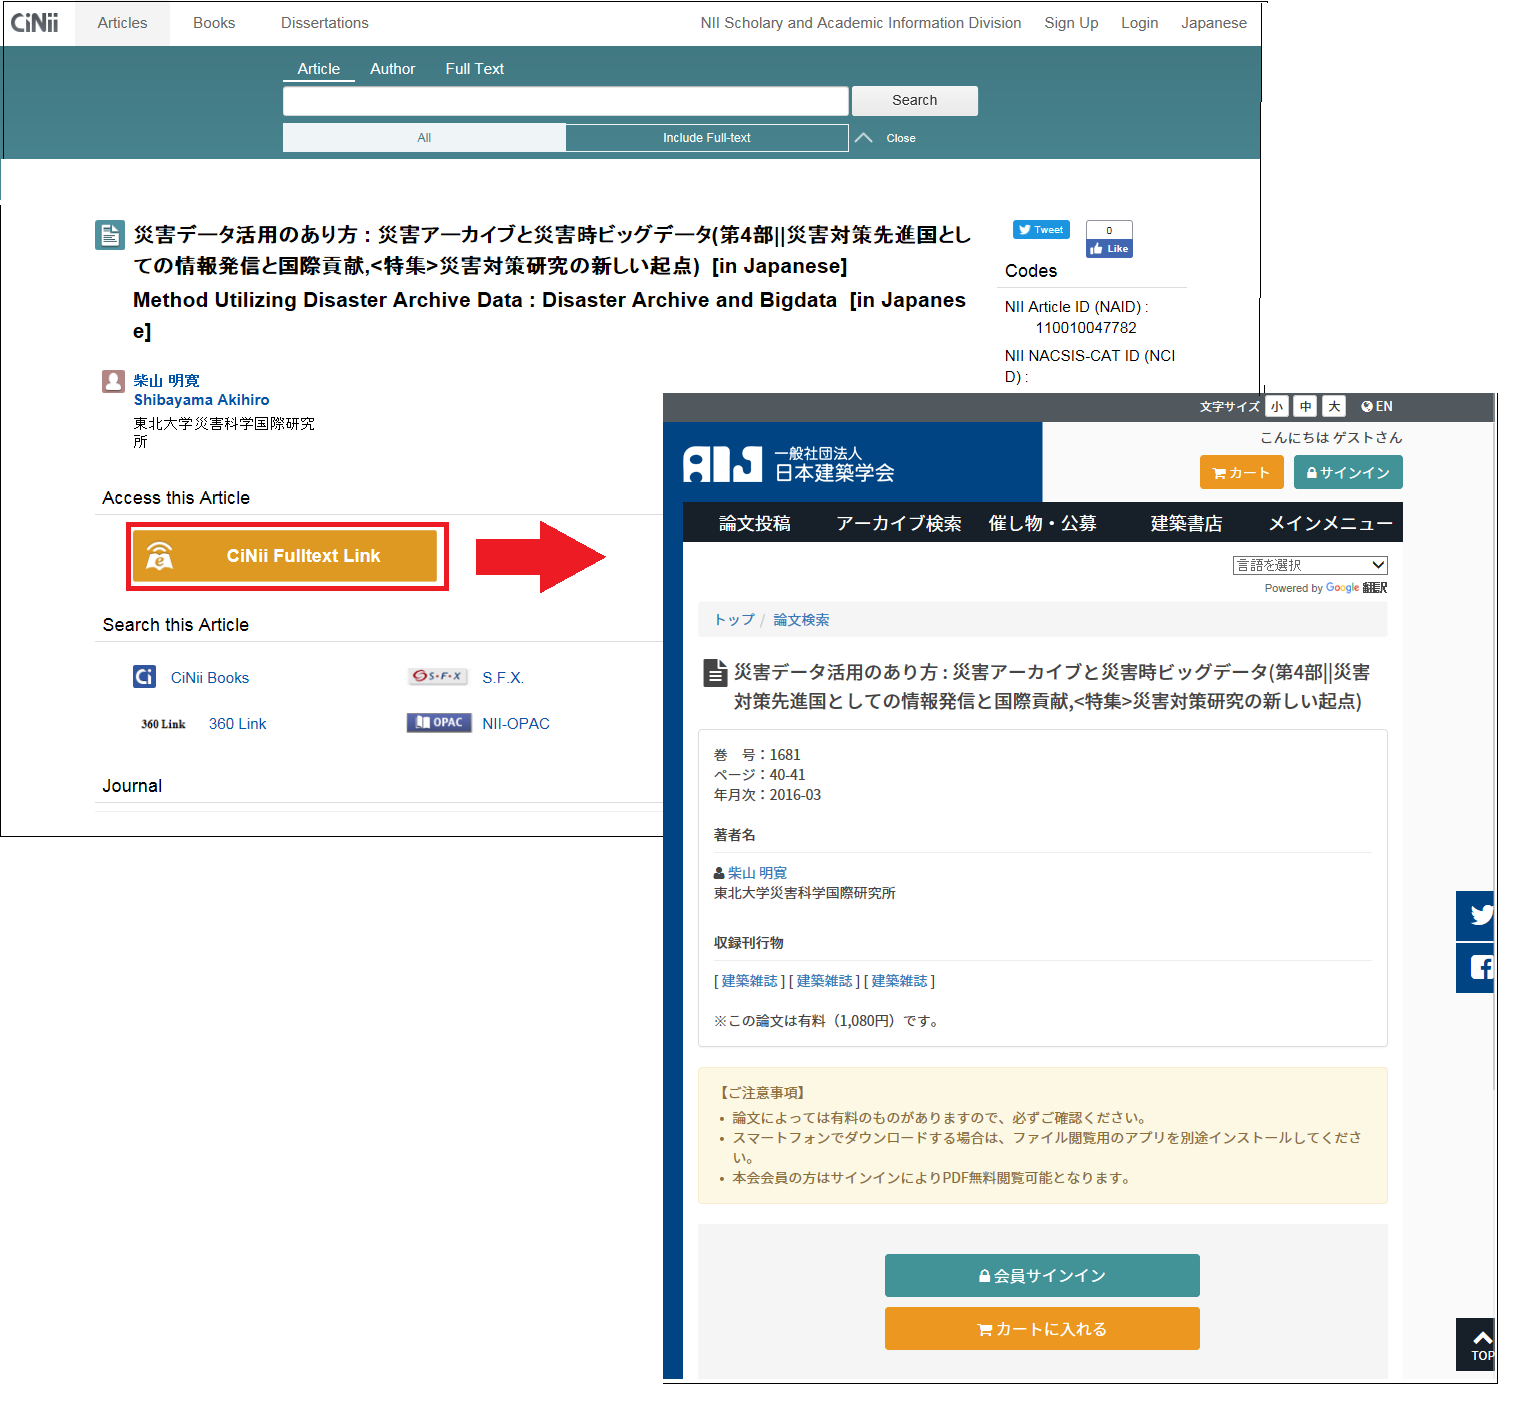 """CiNii Articles started the system linkages with the article search of """"Architectural Institute of Japan"""""""